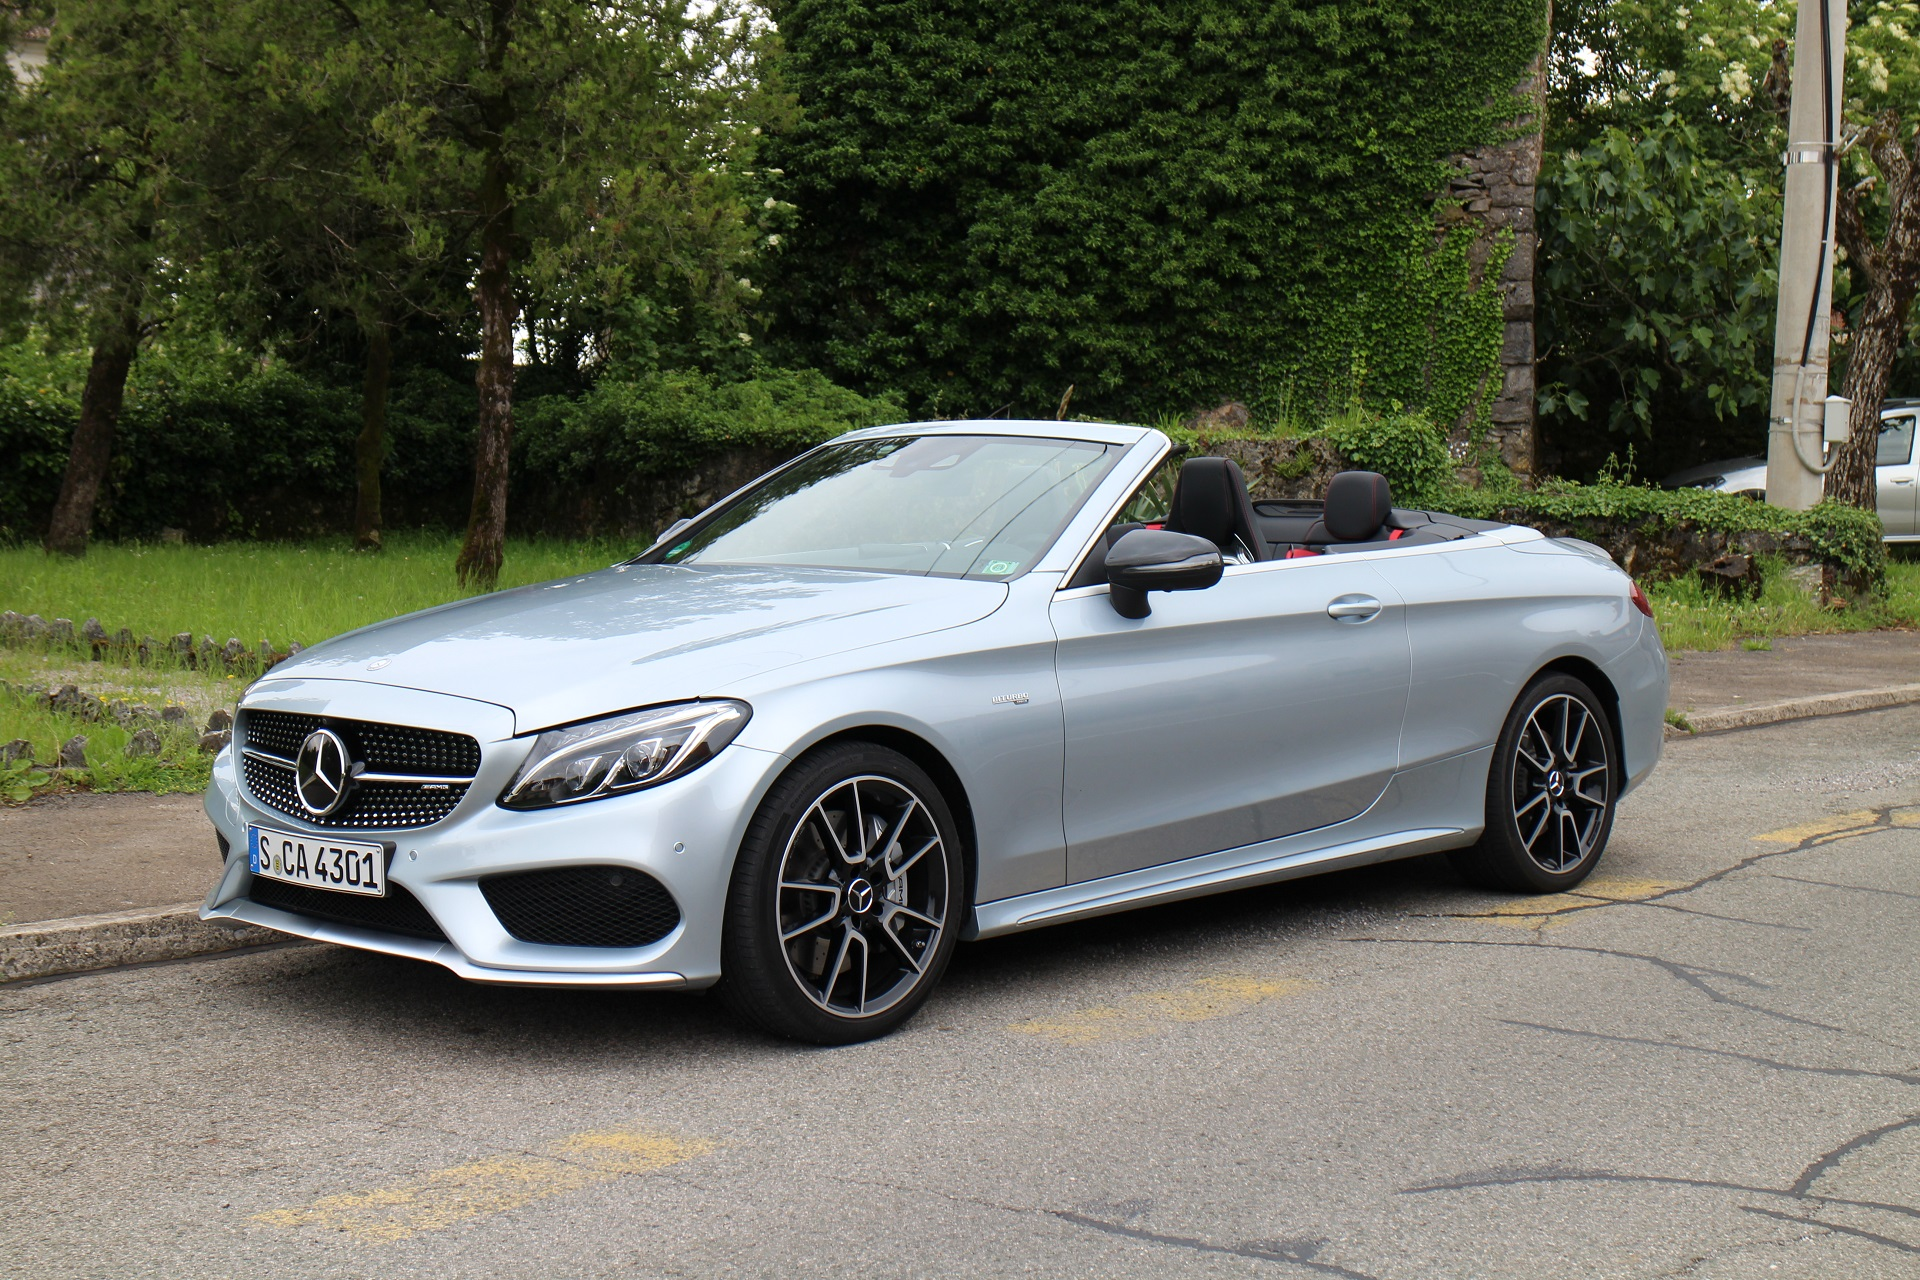 2017 Mercedes Benz C Class Cabriolet First Drive Review